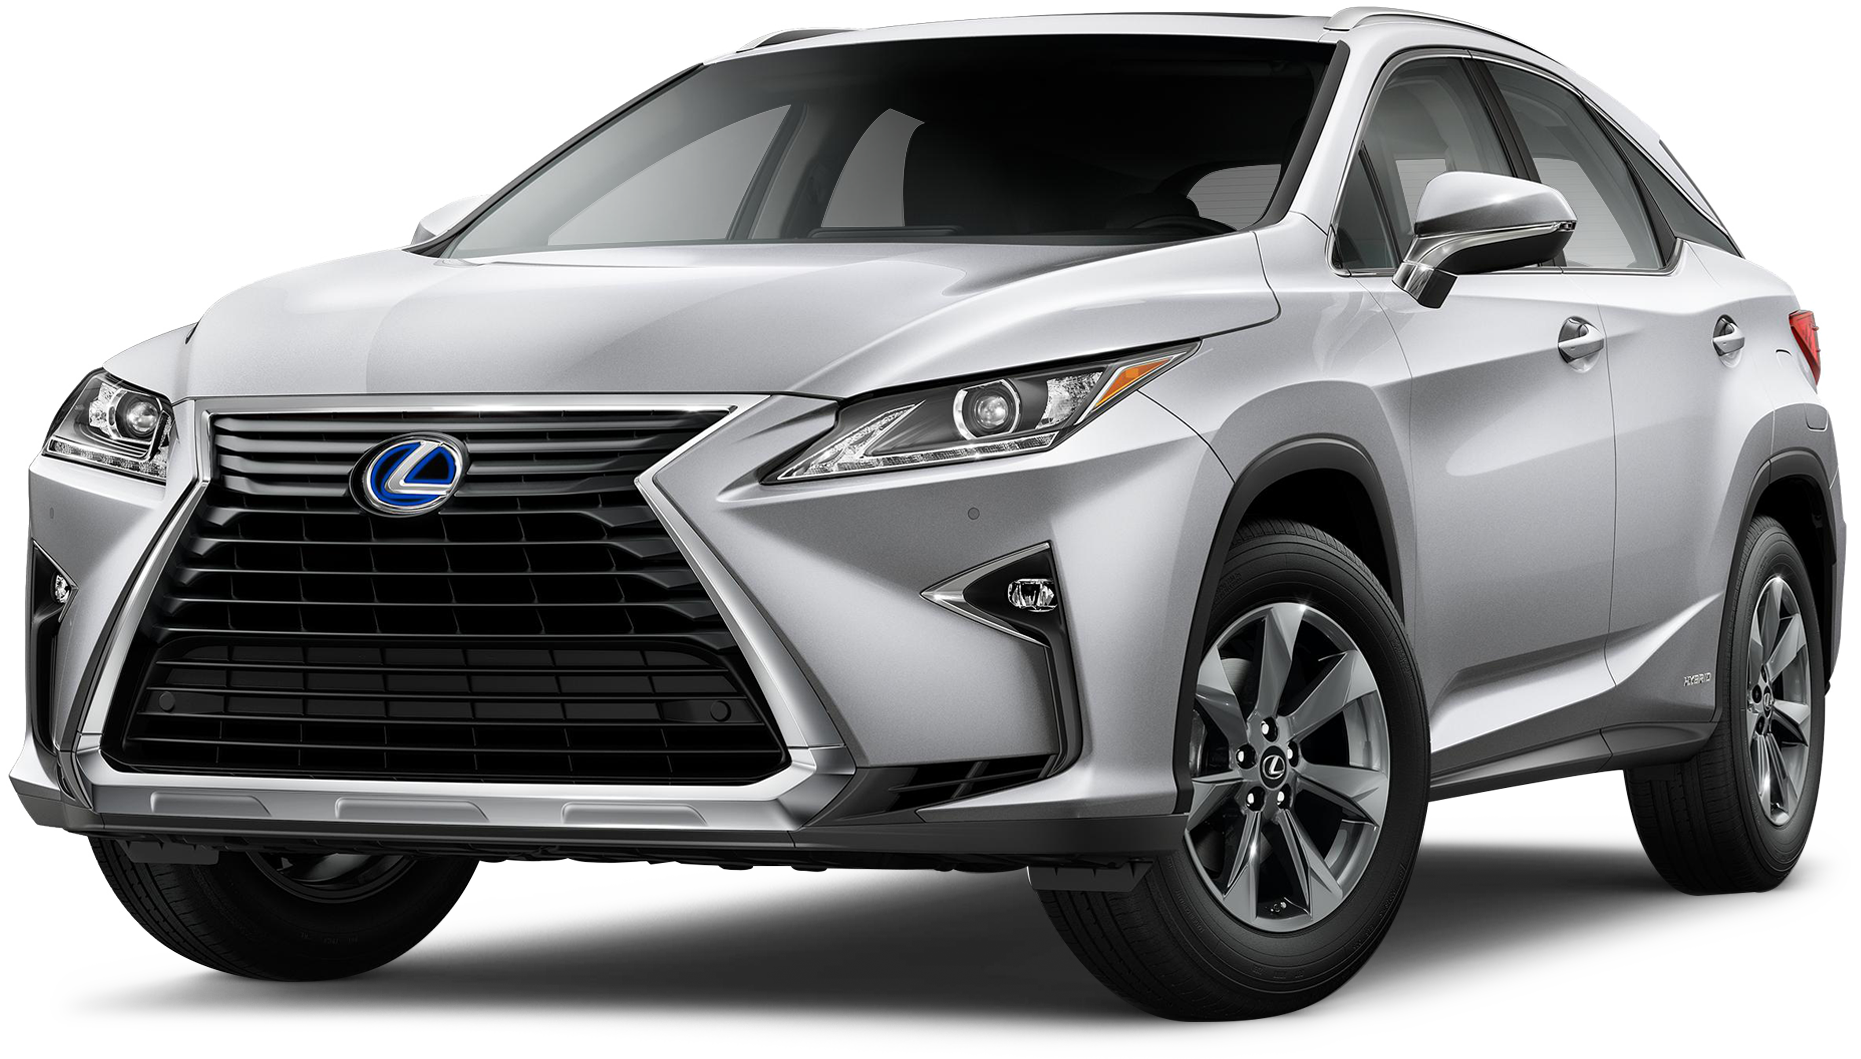 Johnson Lexus Raleigh >> 2019 Lexus RX 450hL Incentives, Specials & Offers in ...